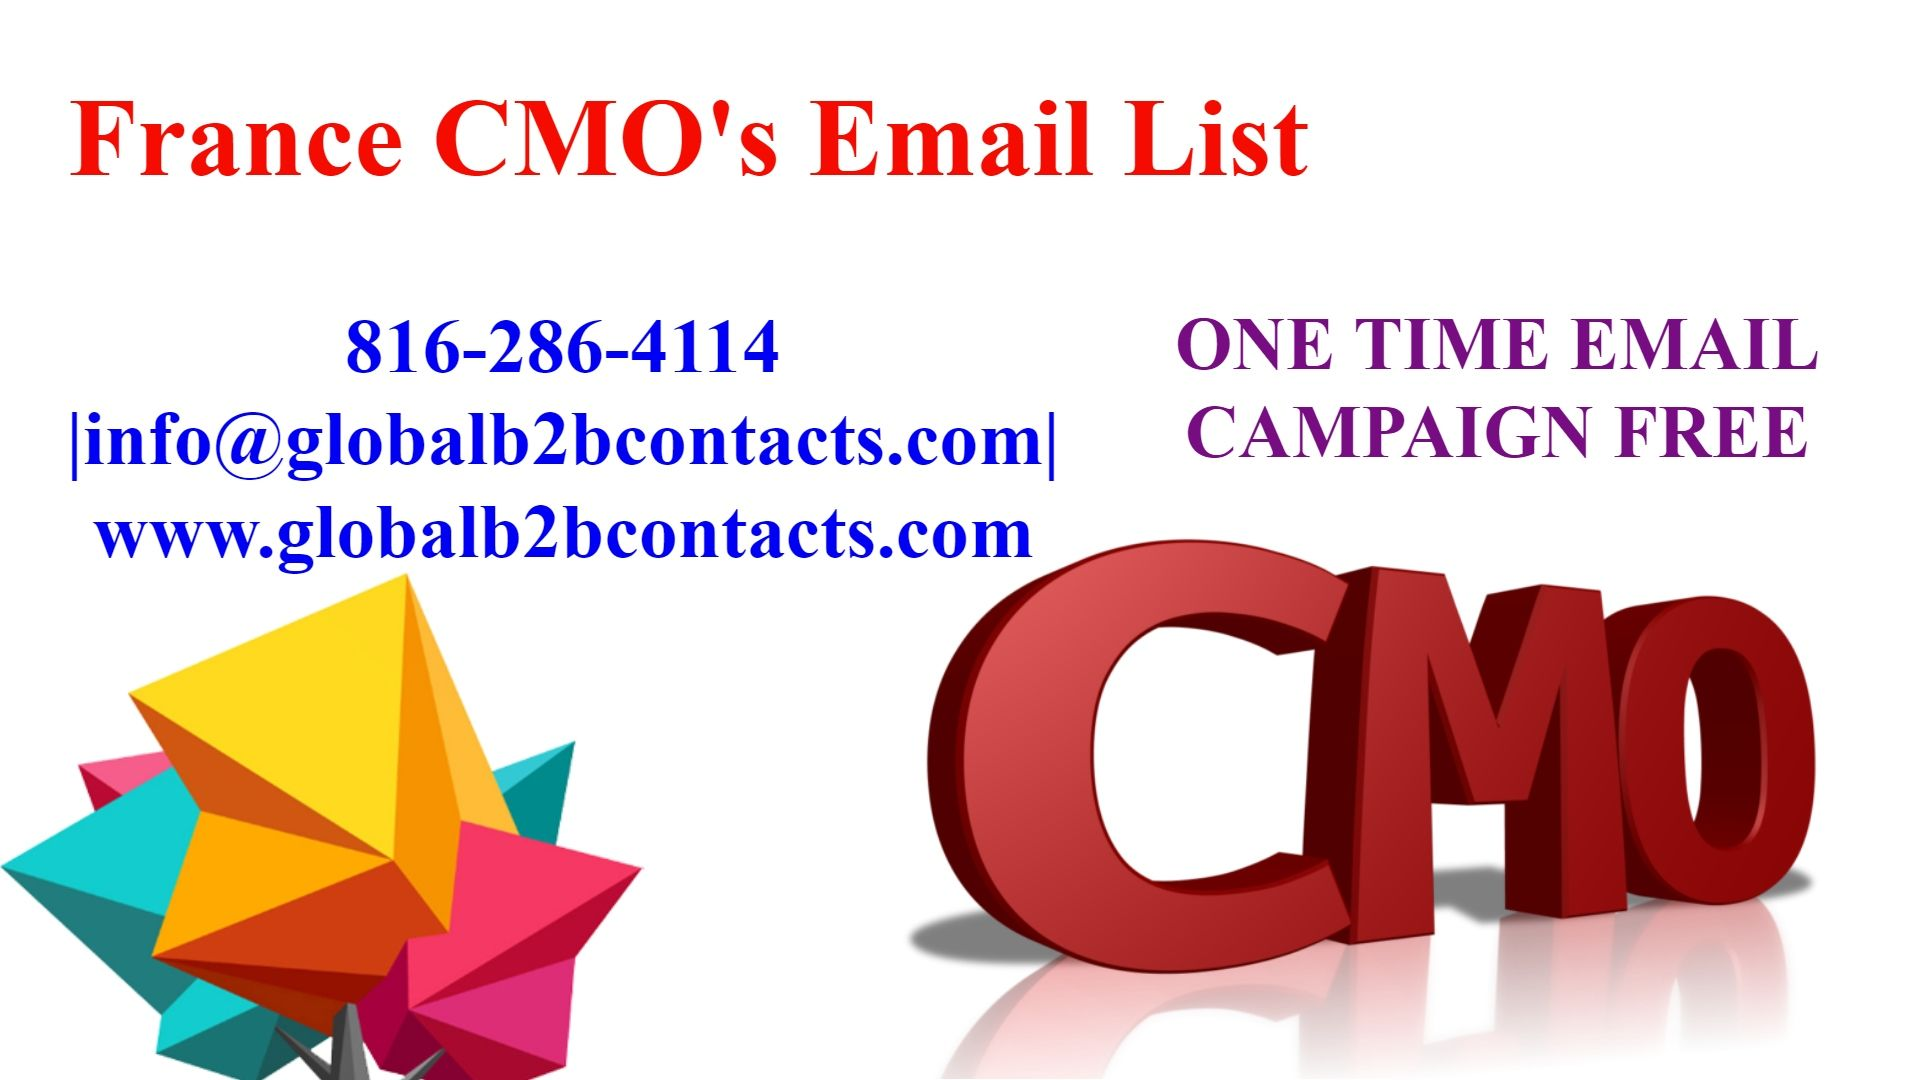 France CMO's Email List Business emails, Buy email list